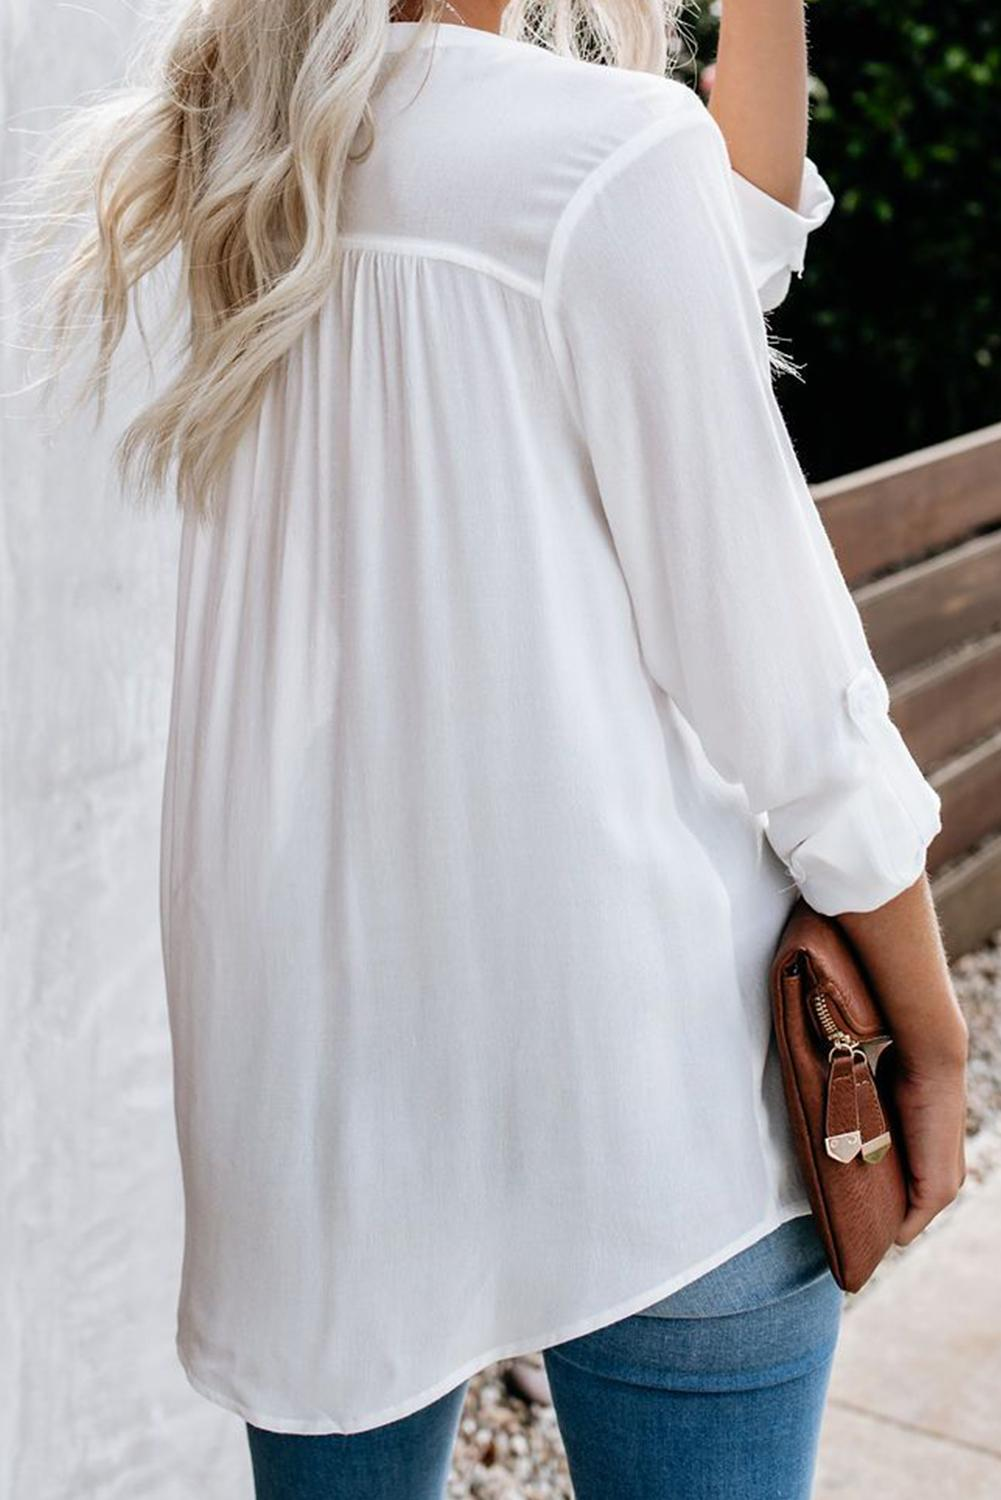 White Take A Break Button Down Pocket Blouse Blouses & Shirts Discount Designer Fashion Clothes Shoes Bags Women Men Kids Children Black Owned Business